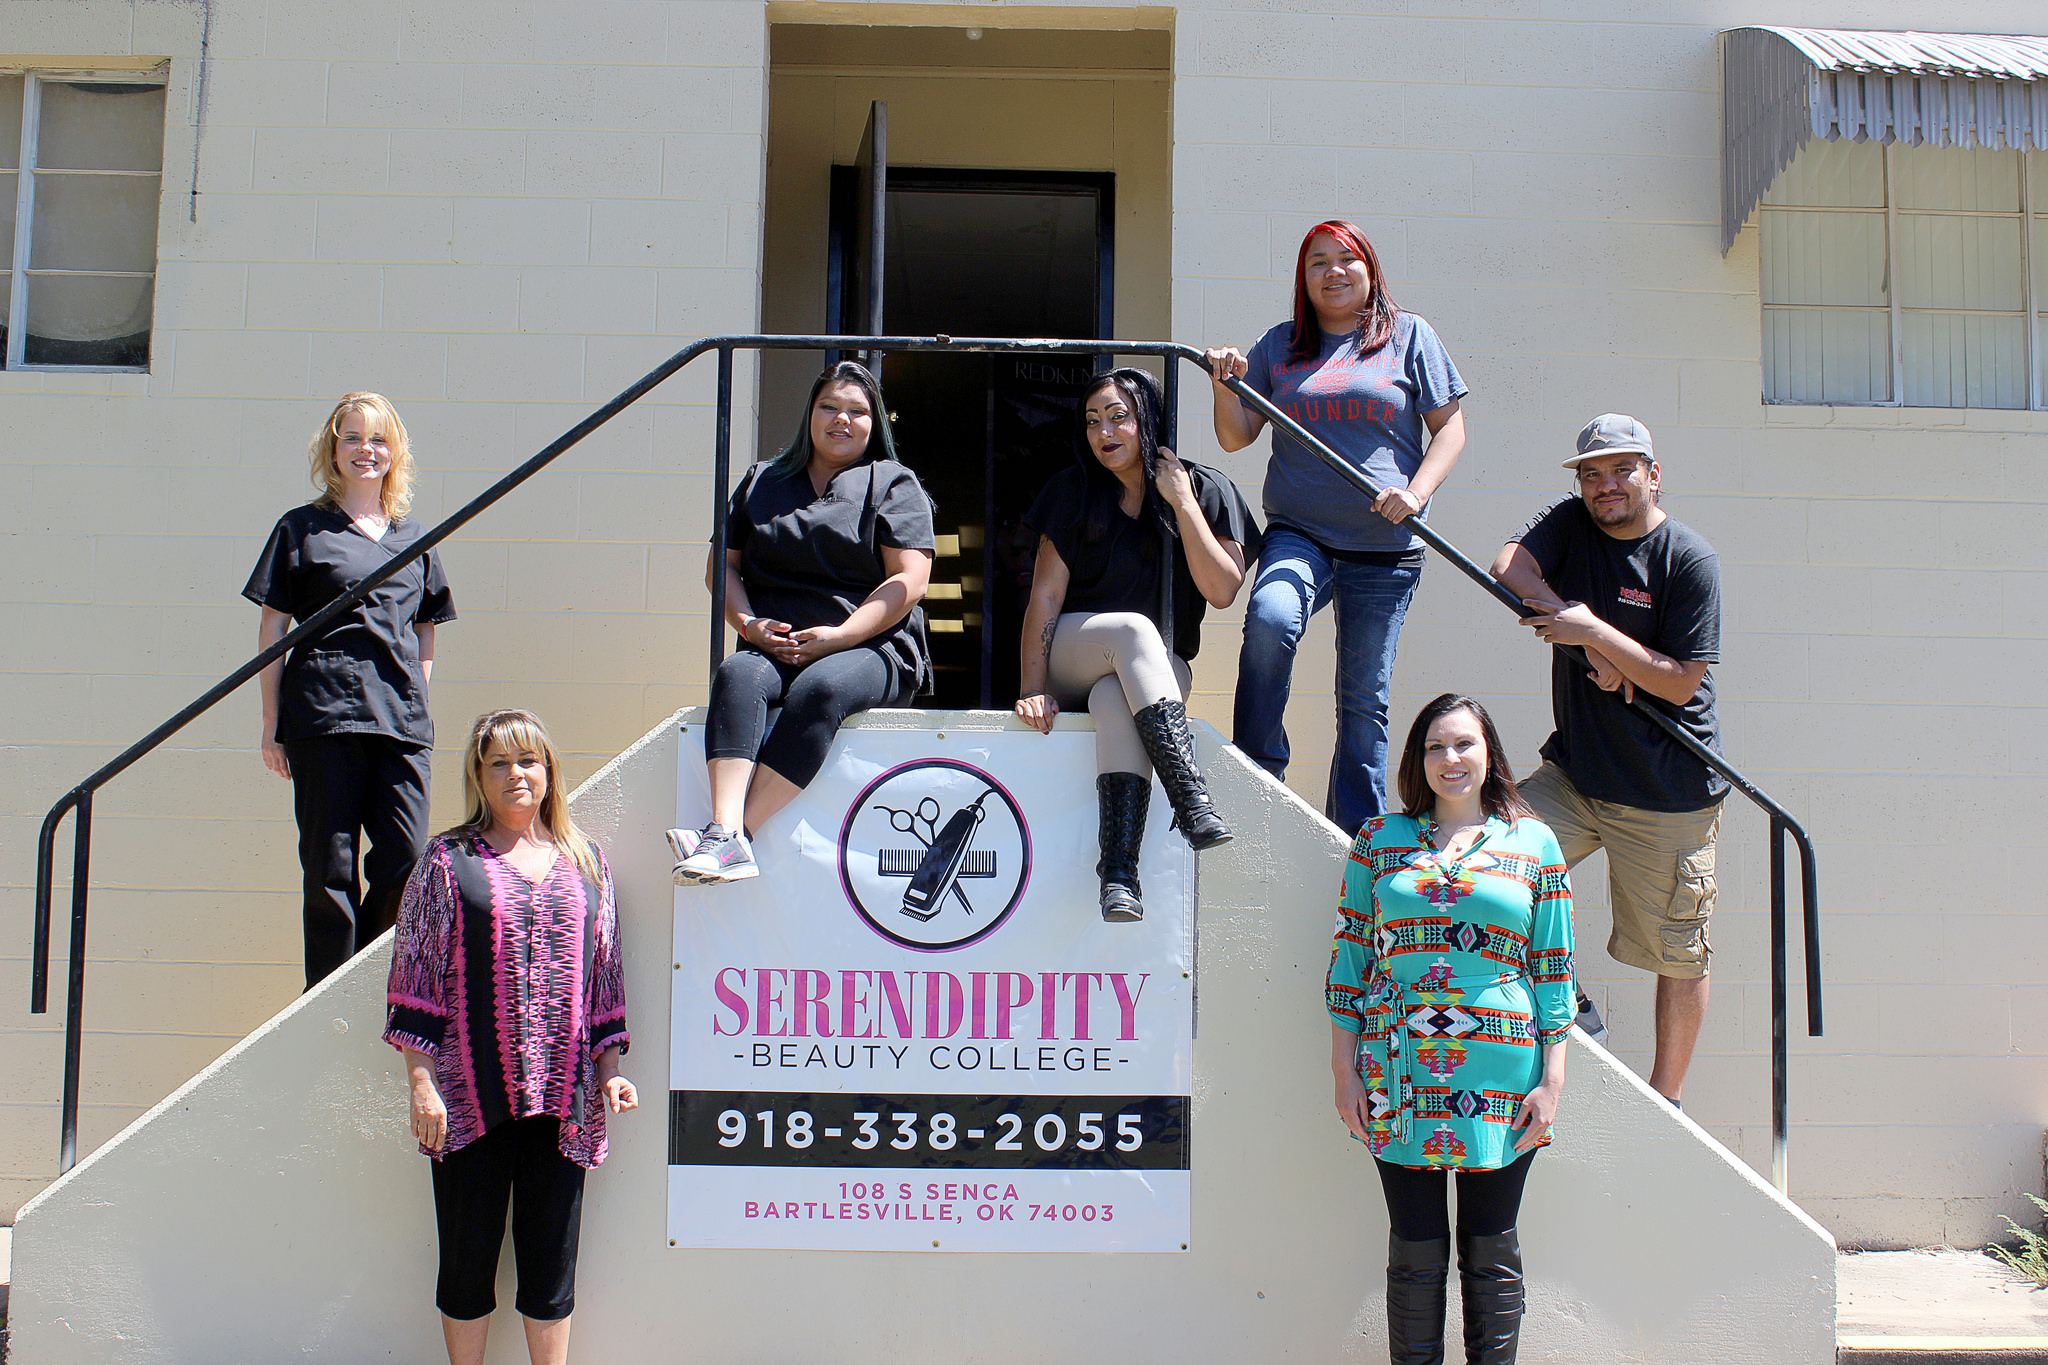 Osage woman starts Serendipity Beauty College in Bartlesville